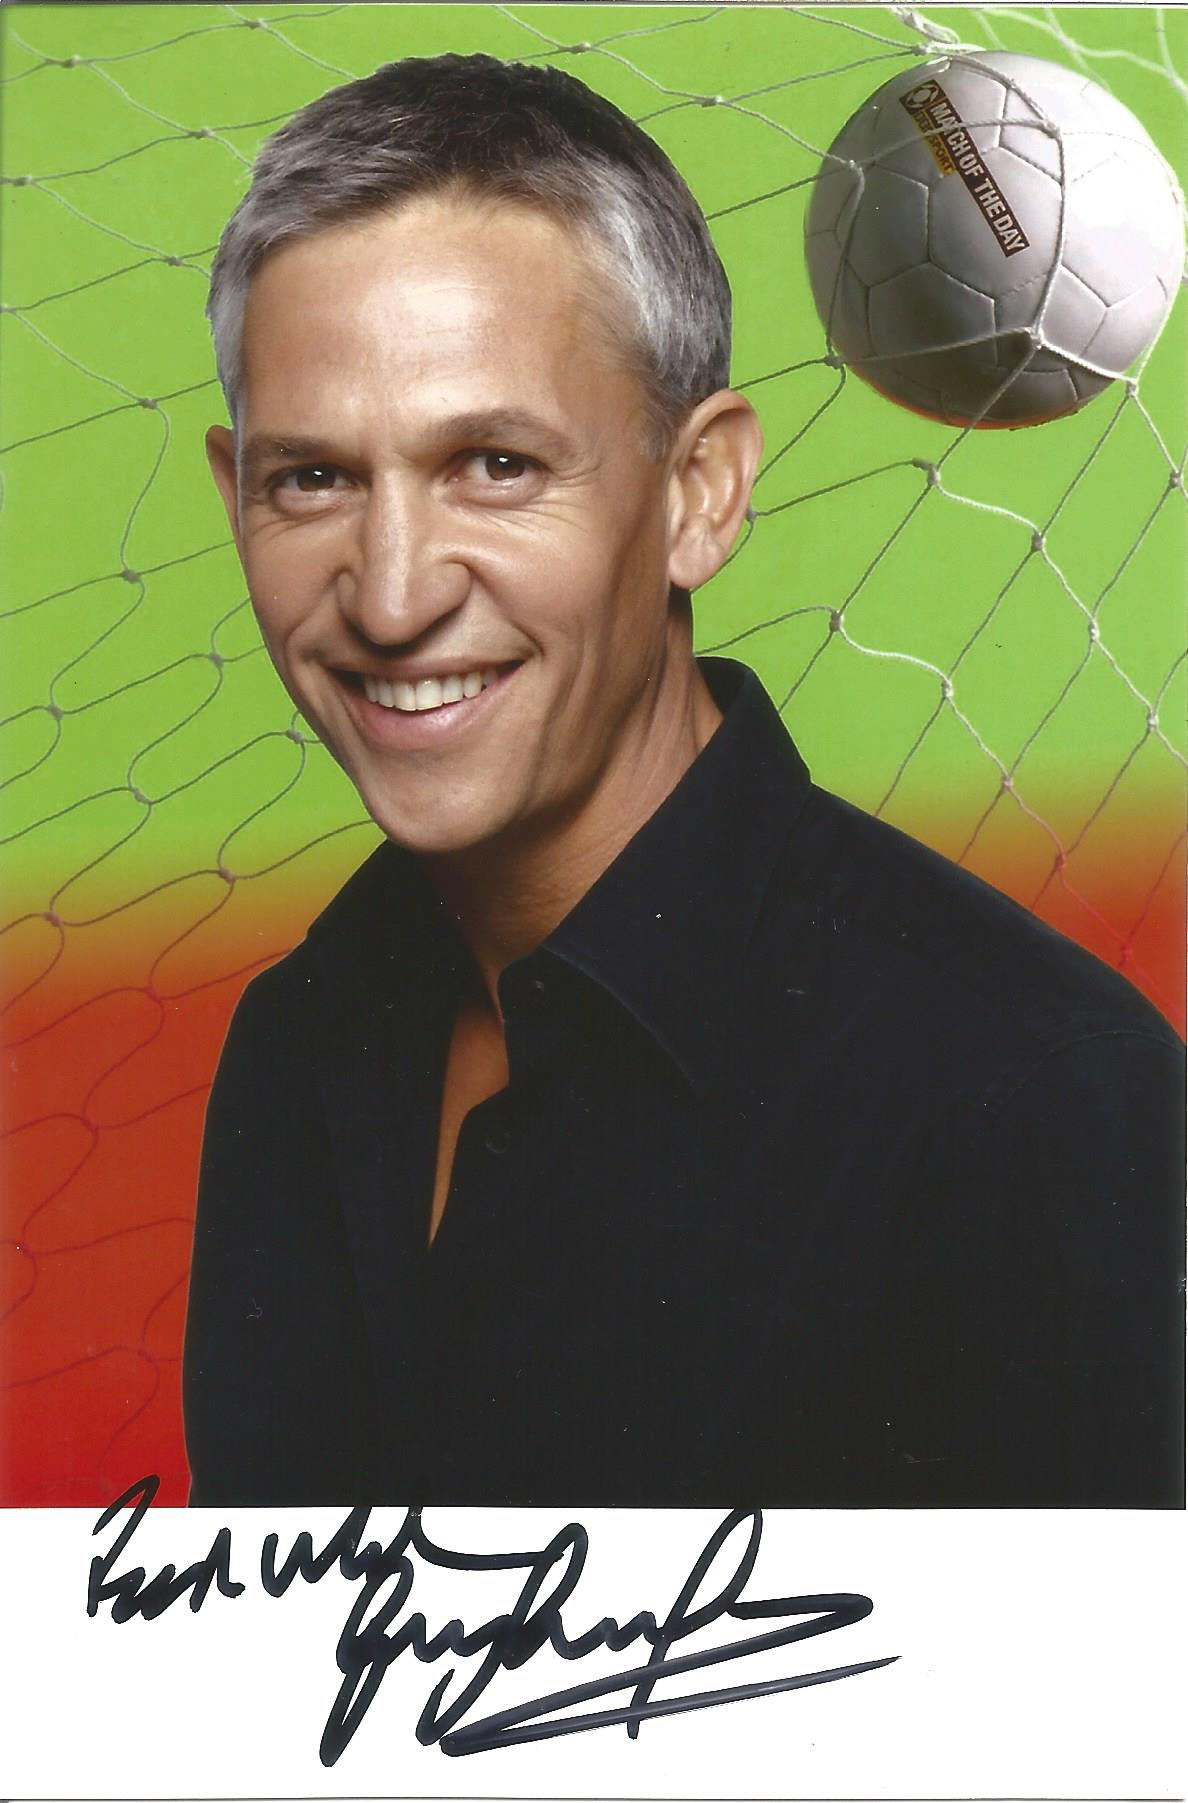 Footballer Gary Lineker signed Match of the Day script and running order for Saturday 17th April - Image 2 of 3